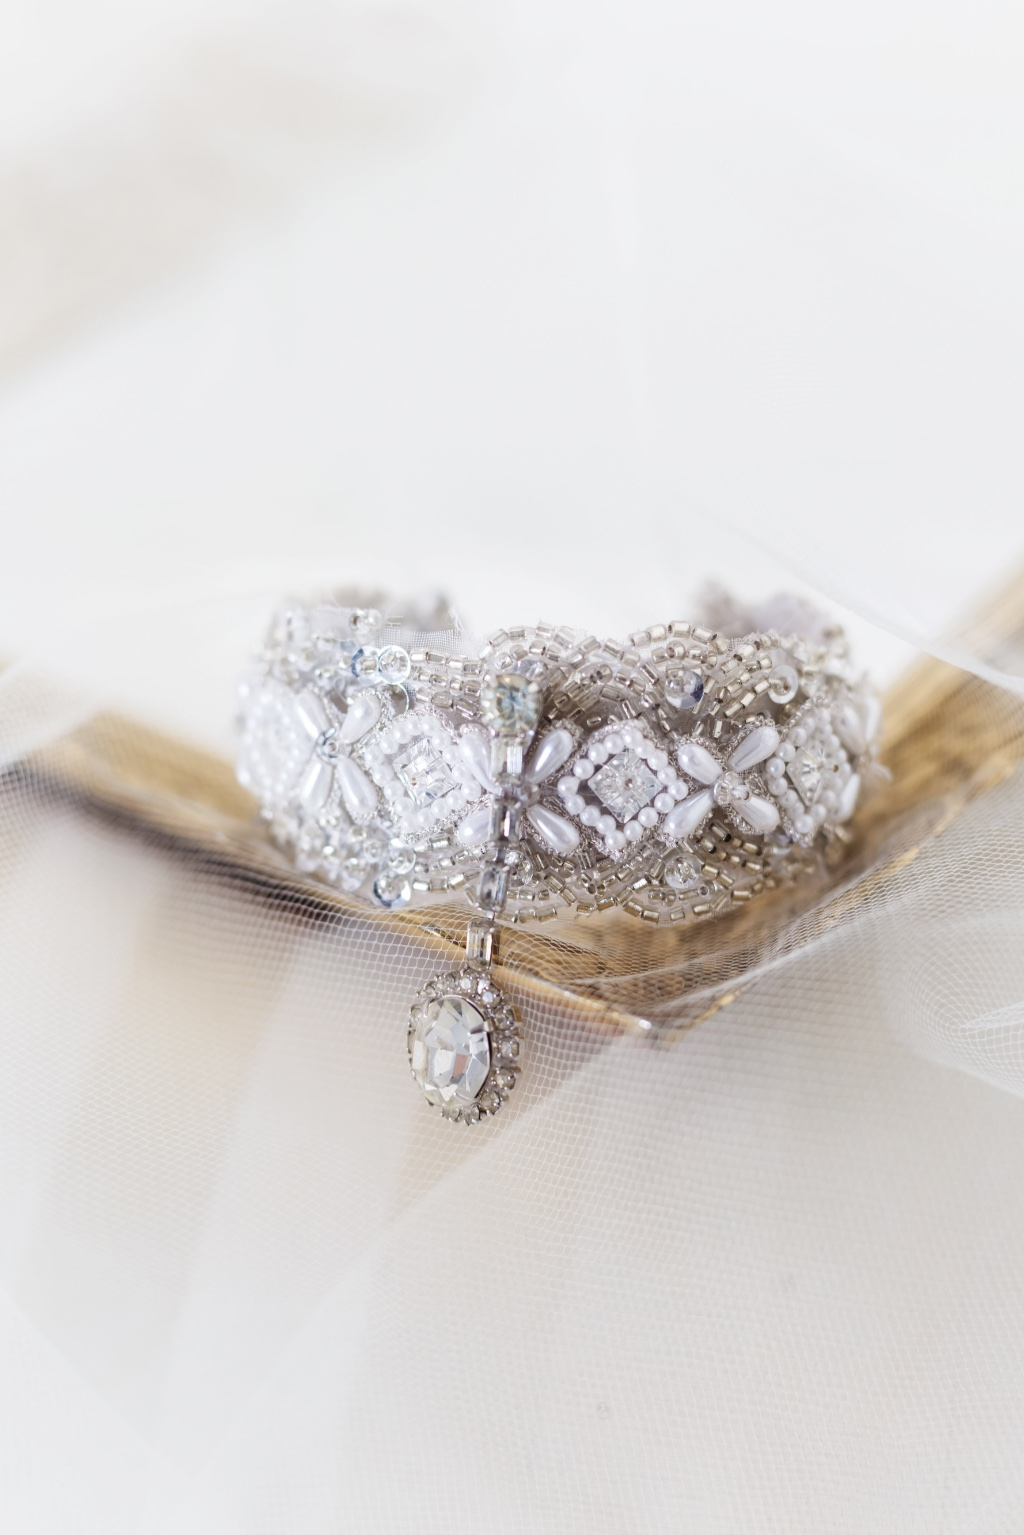 Small vintage jewels give this glamorous bridal cuff the prettiest sparkle.